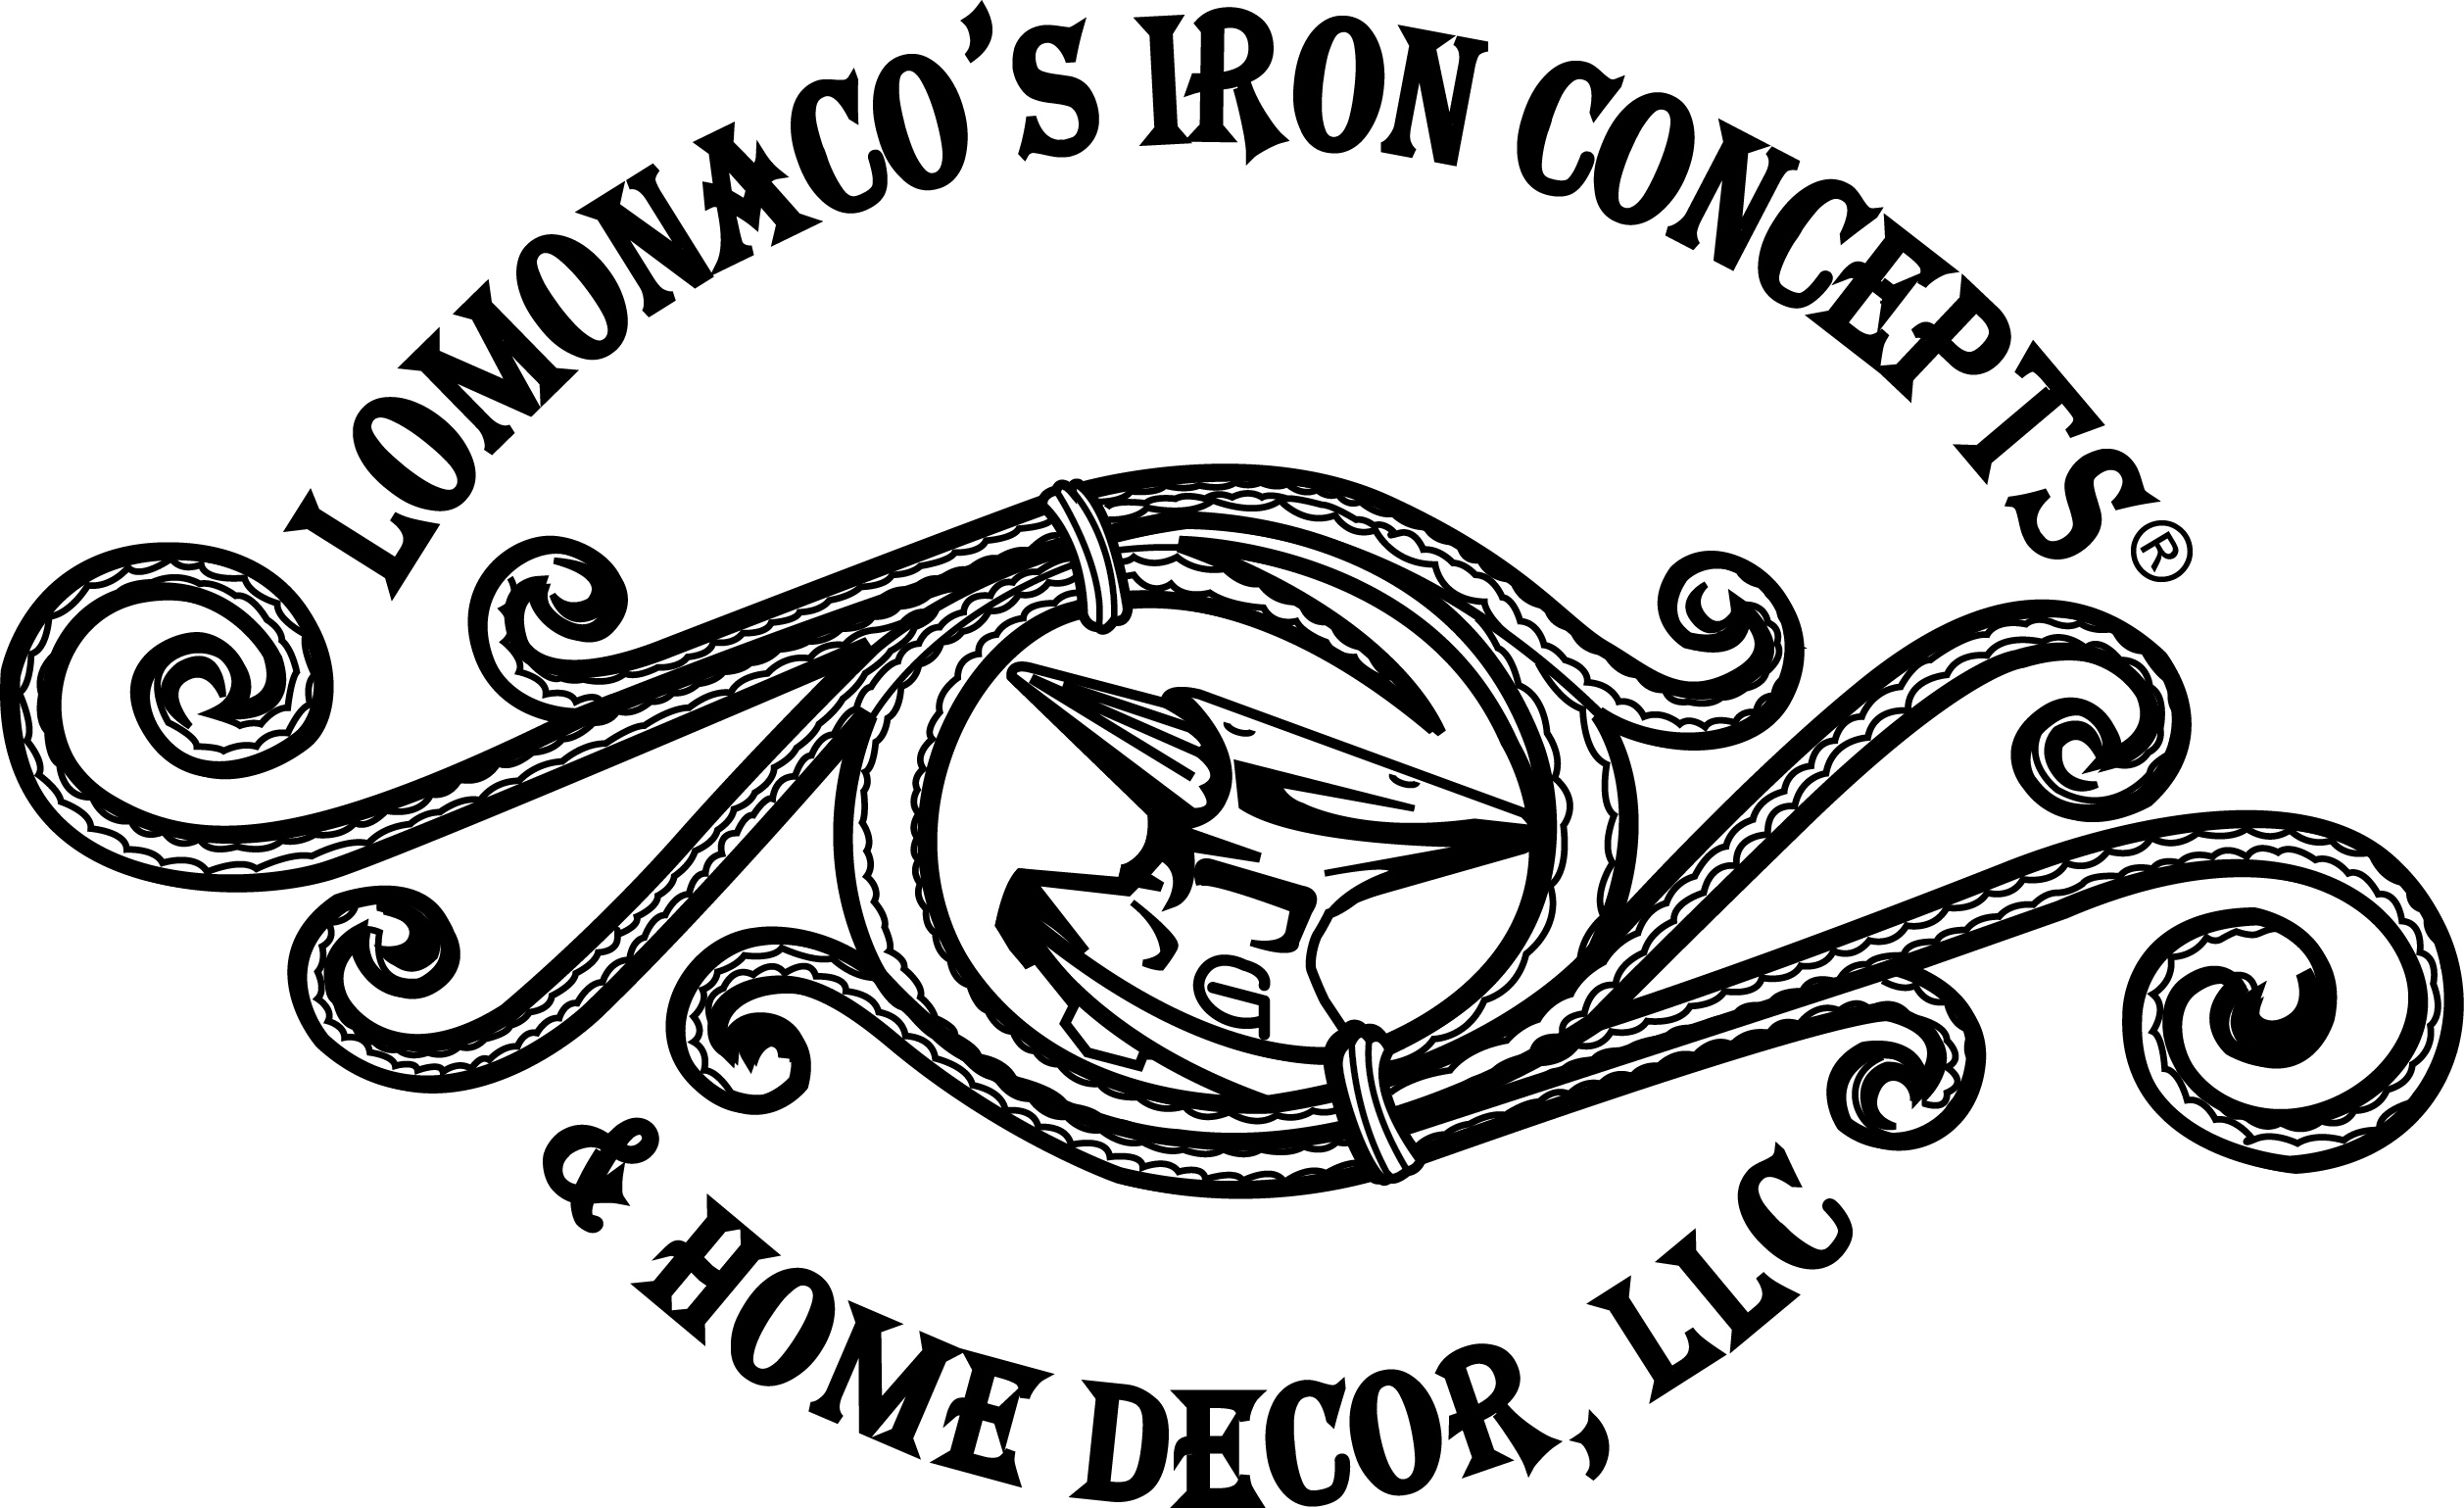 Lomonaco_logo_registered[1]